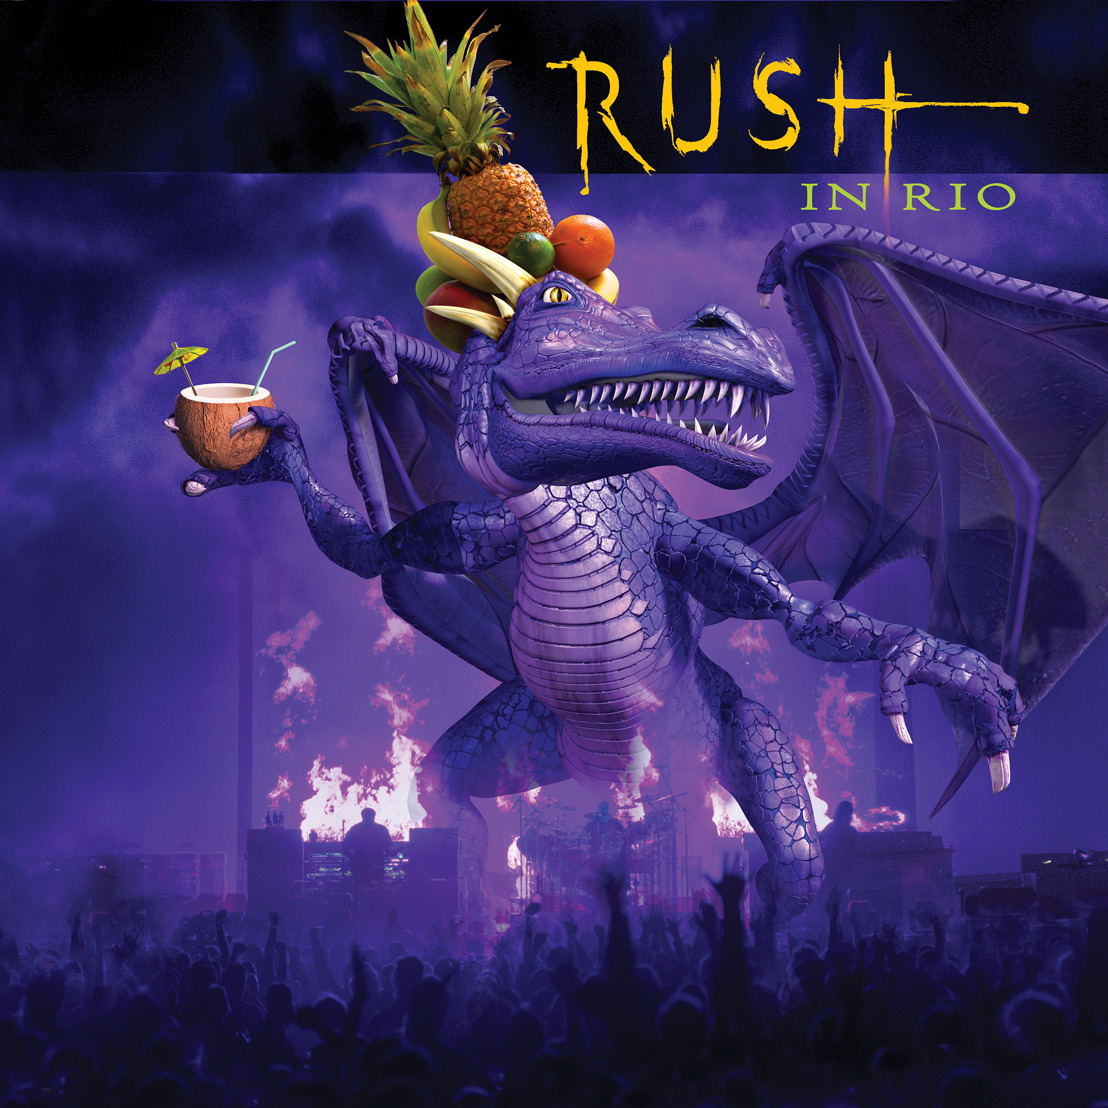 Anthem to Release Rush In Rio on Vinyl on January 18, 2018